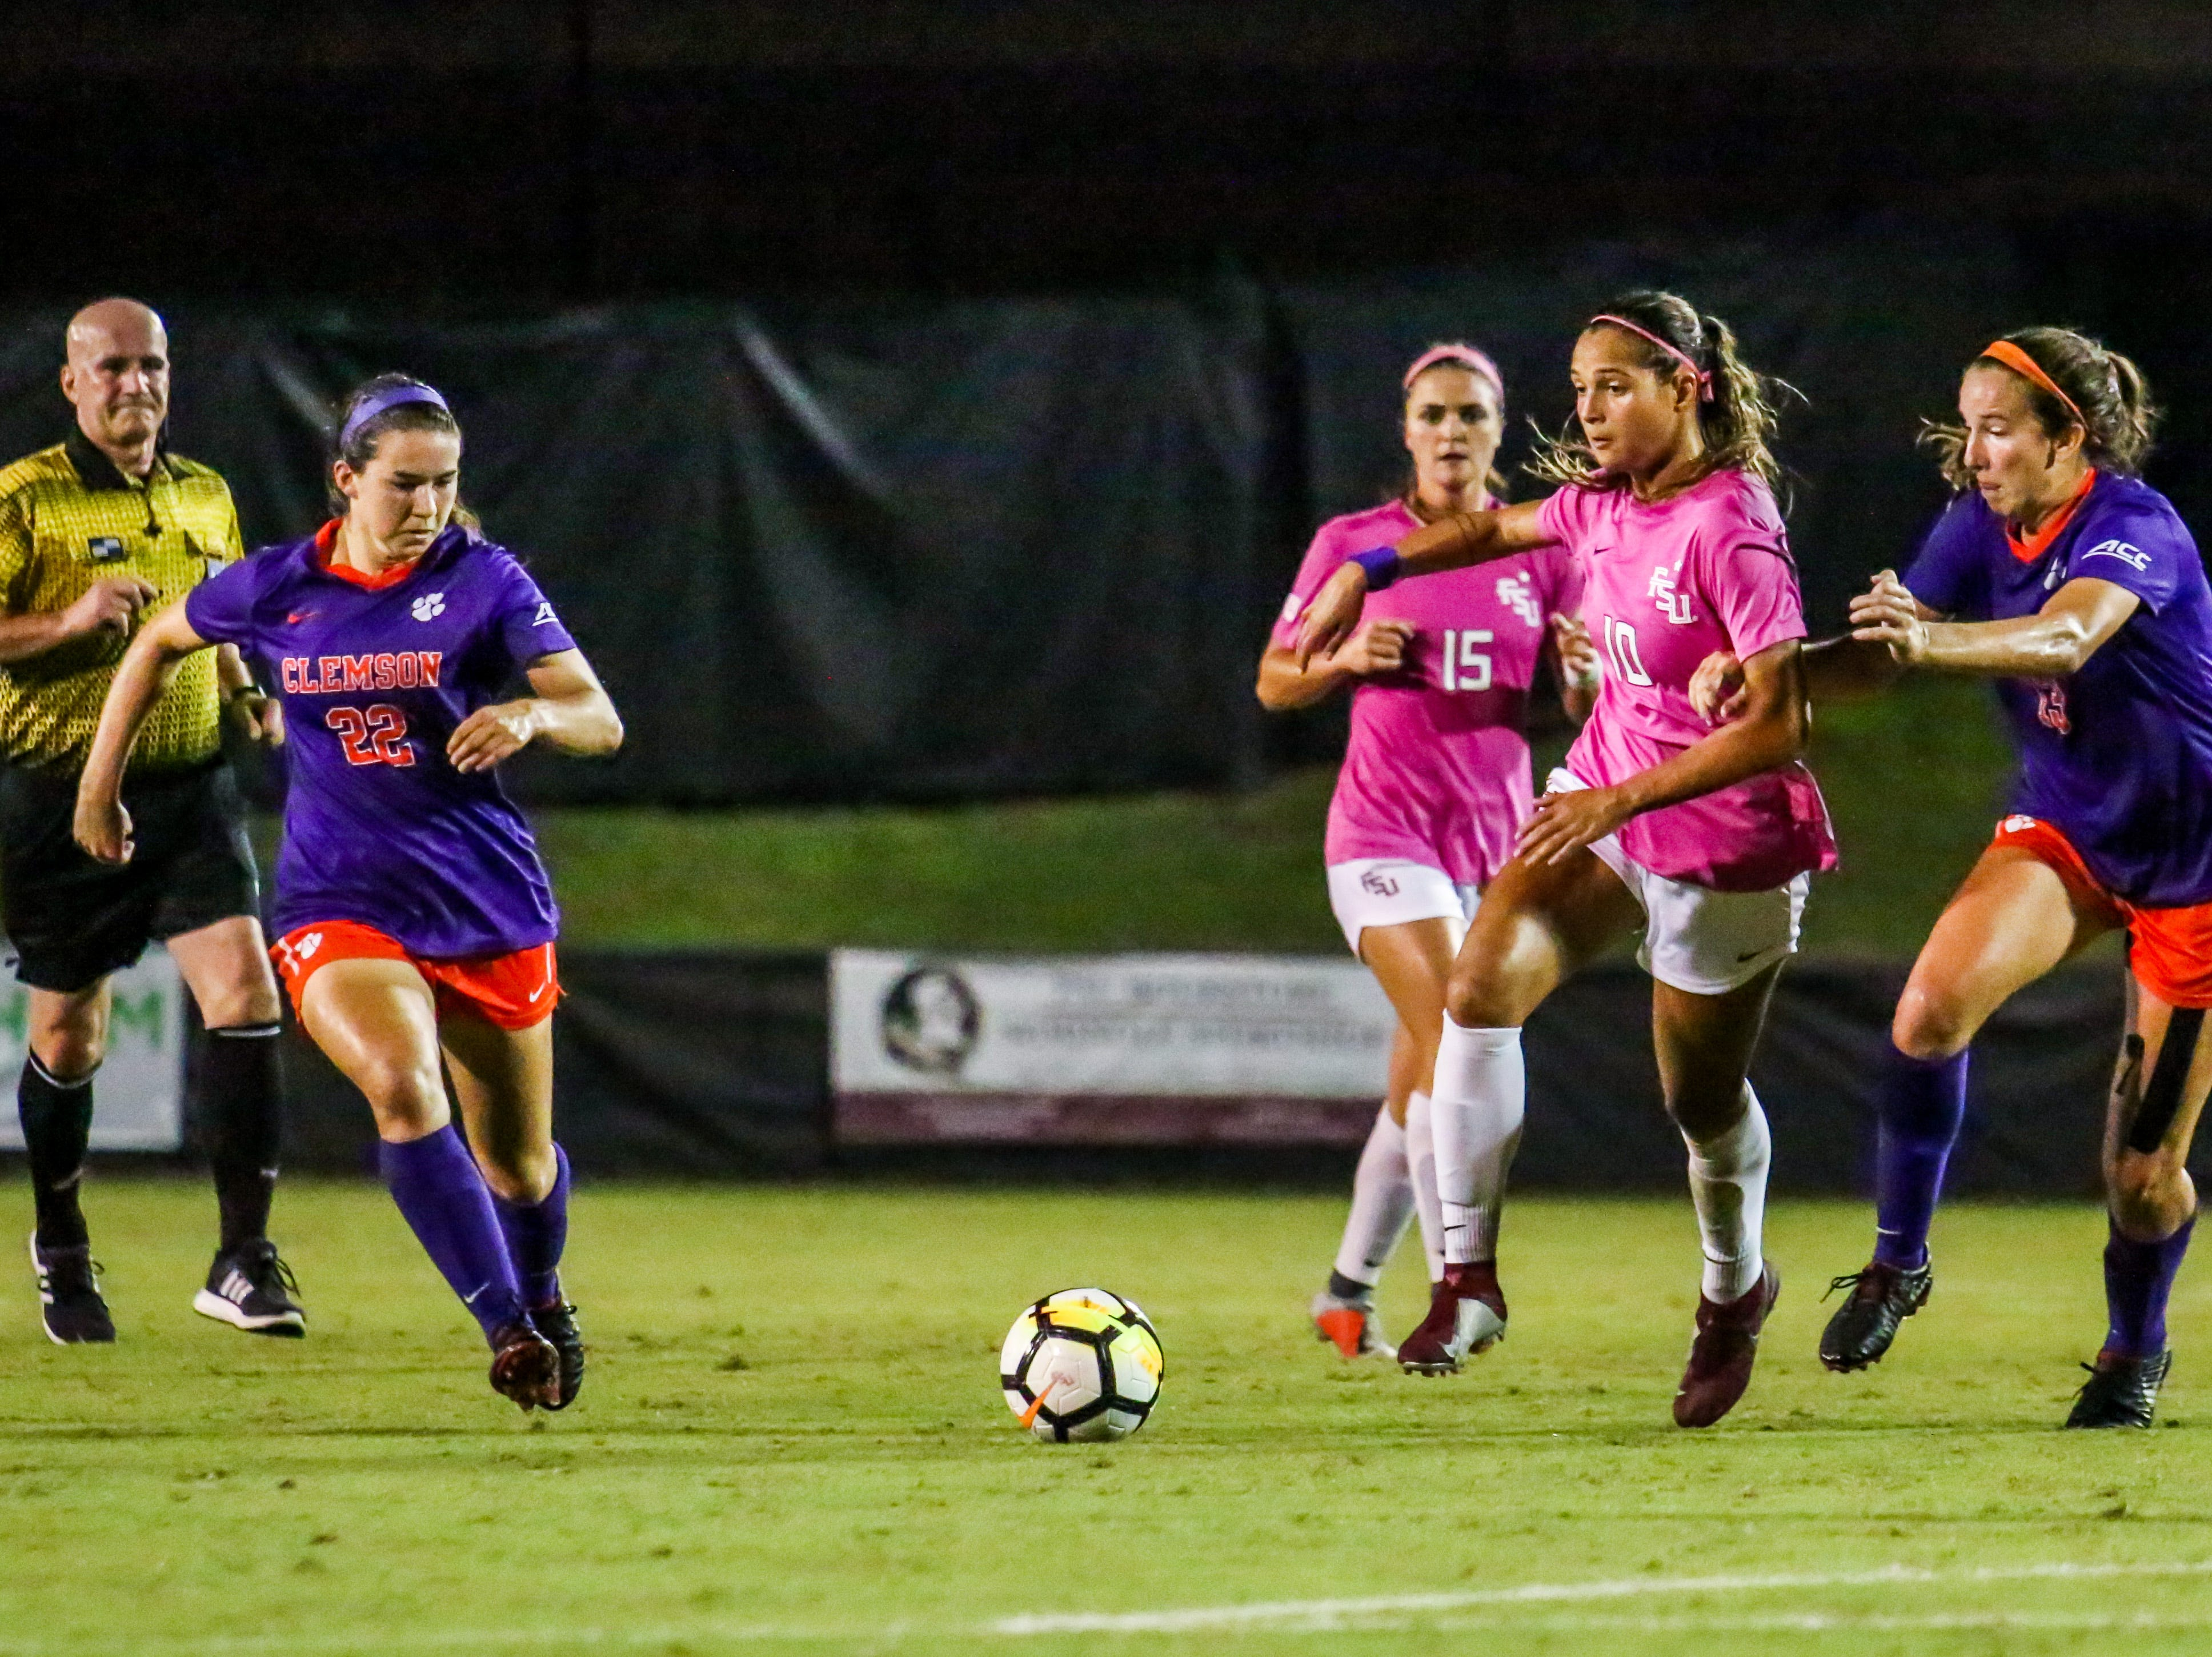 Star-midfielder, Deyna Castellanos (10), was also shutdown throughout most of the game against Clemson on Thursday, October 4th at the Seminole Soccer Complex.